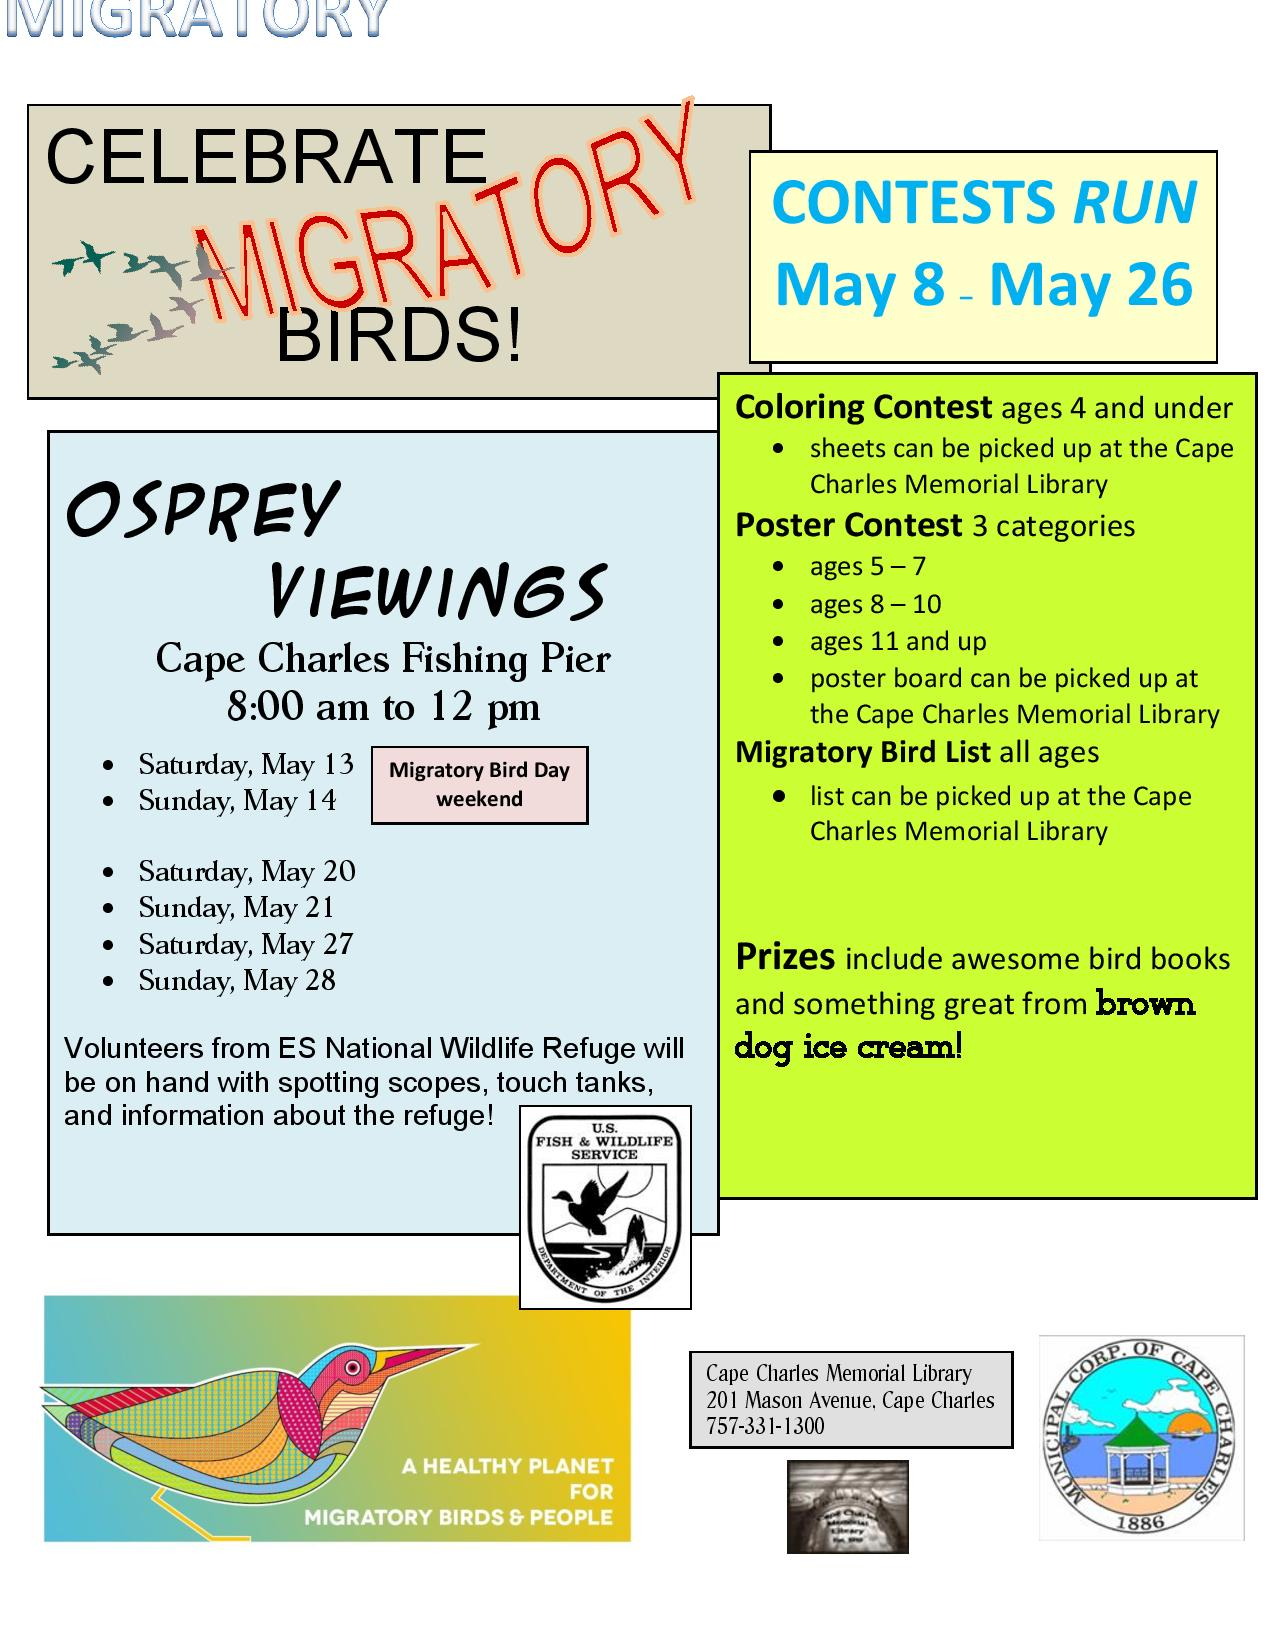 Celebrate Migratory Birds Contest @ Cape Charles Memorial Library